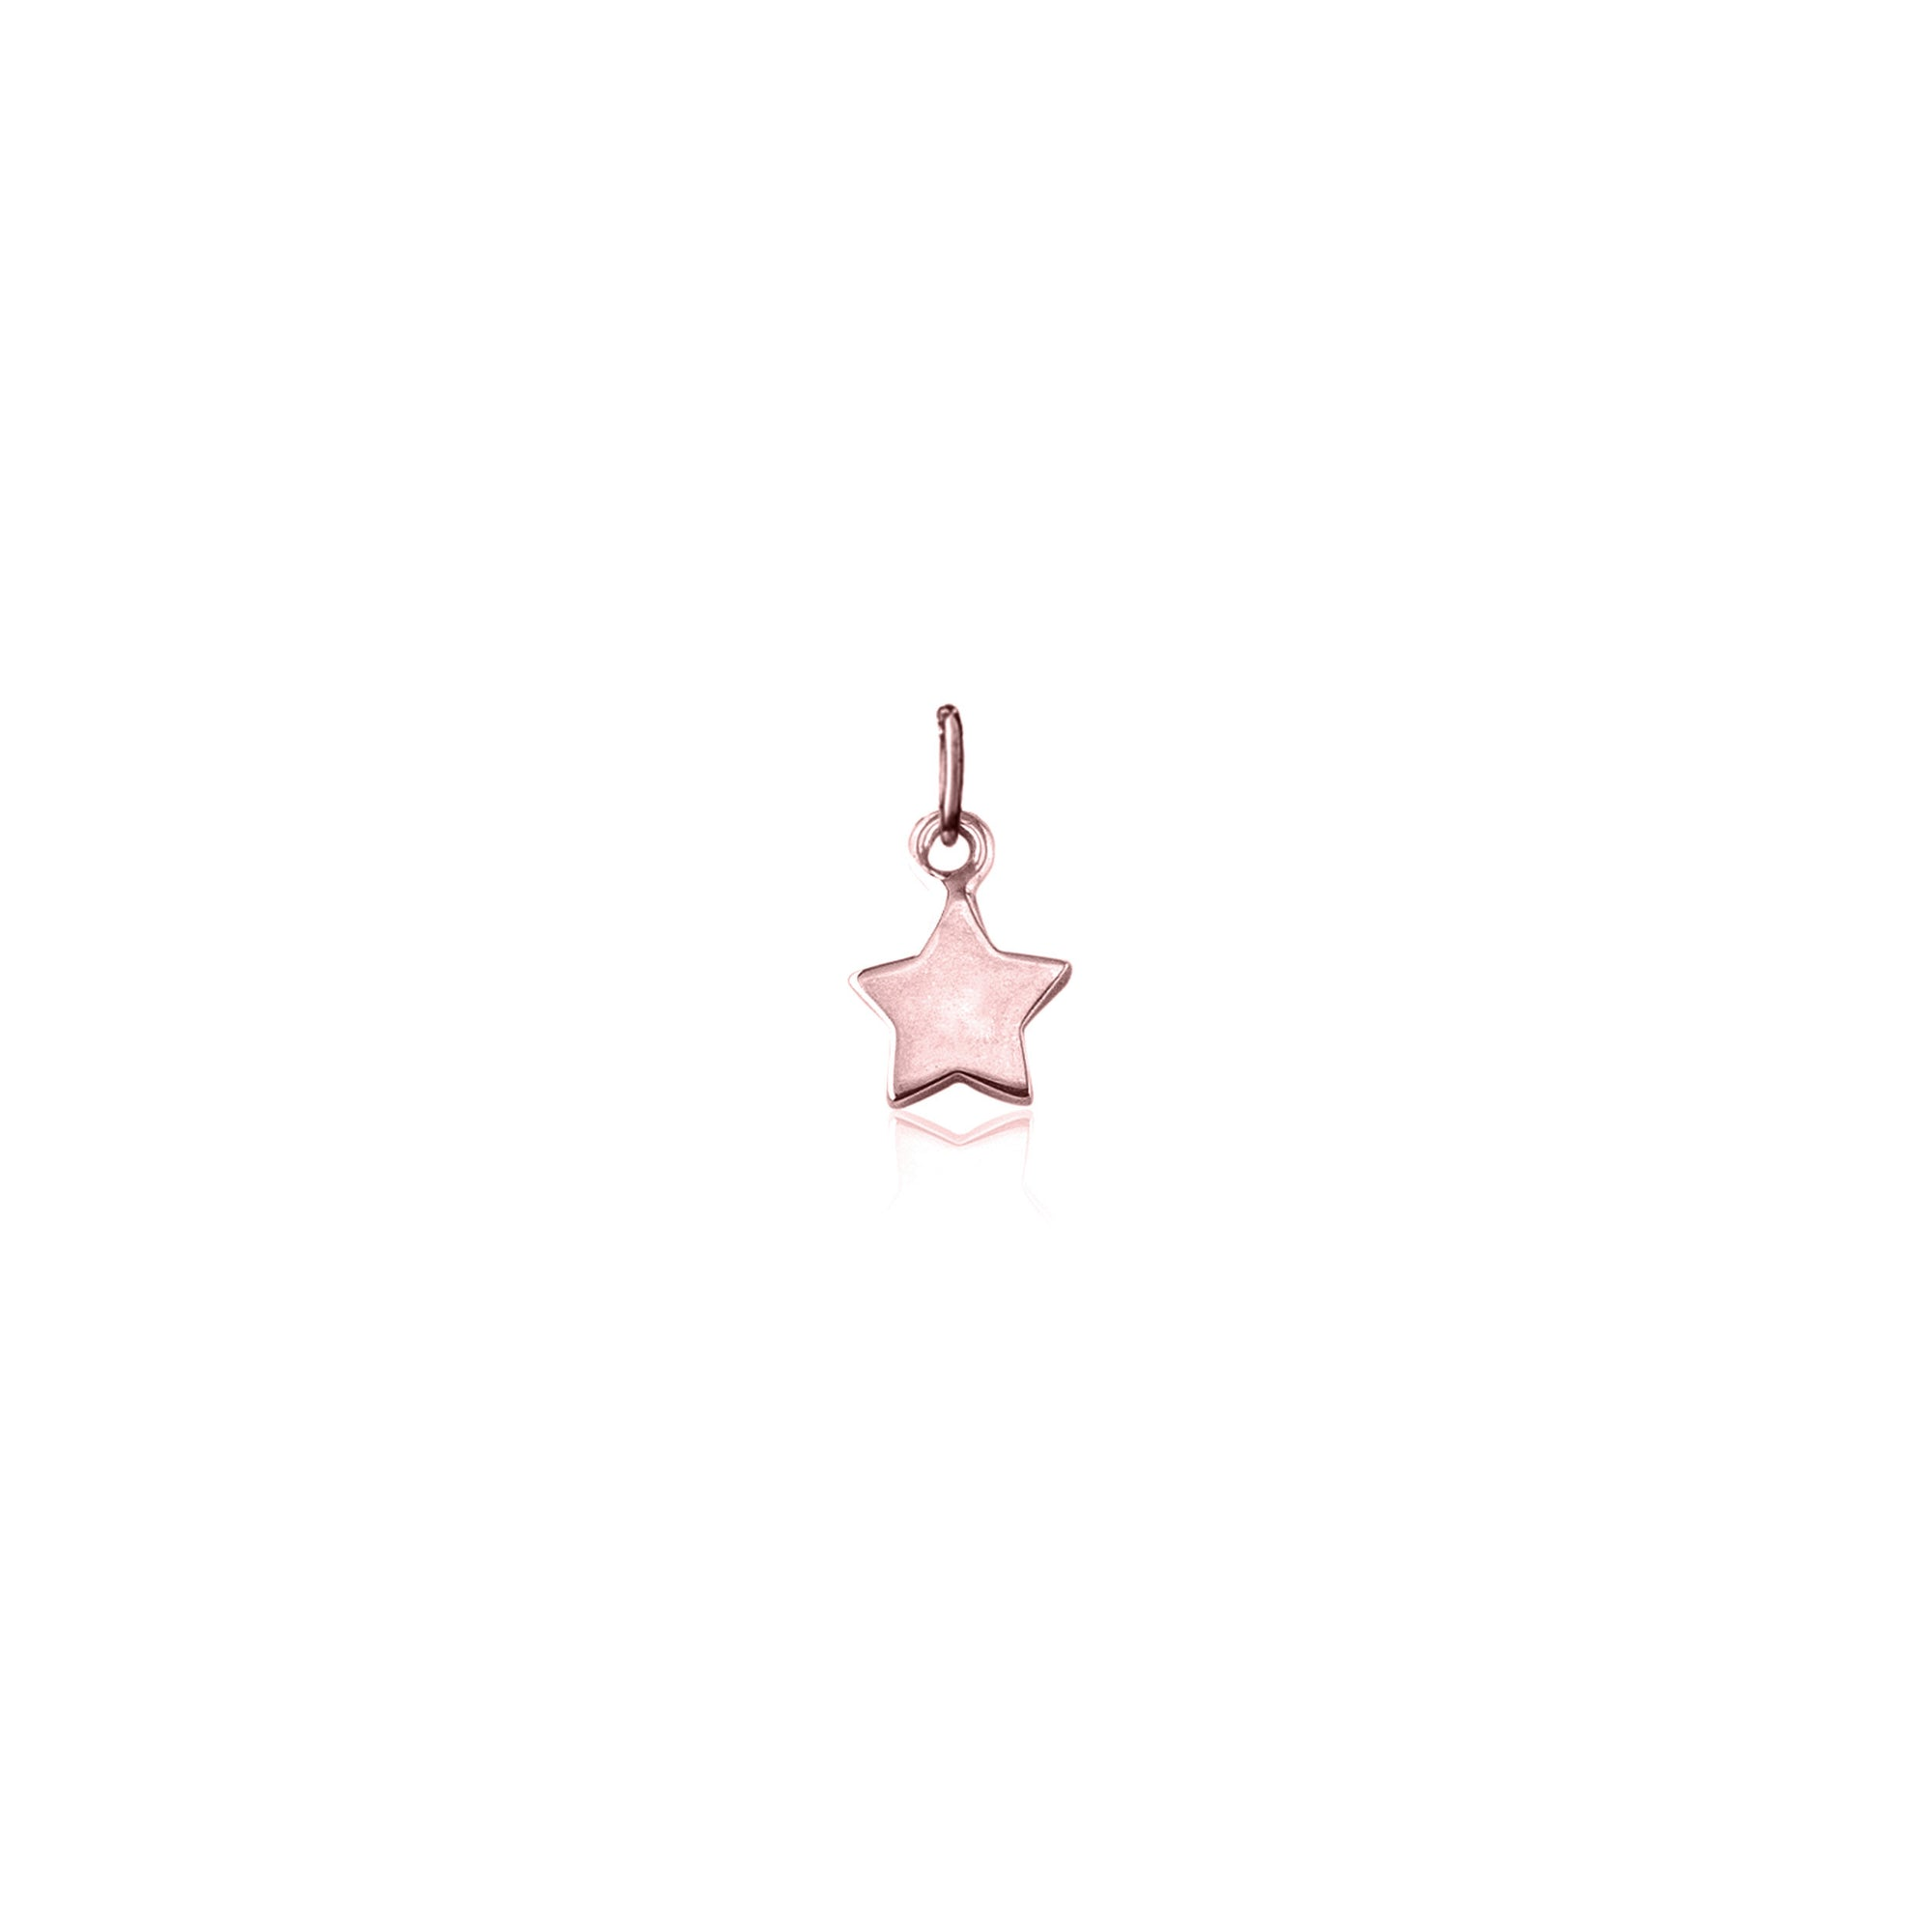 Rose Gold Star Charm - La Luna Rose Bon Voyage Collection